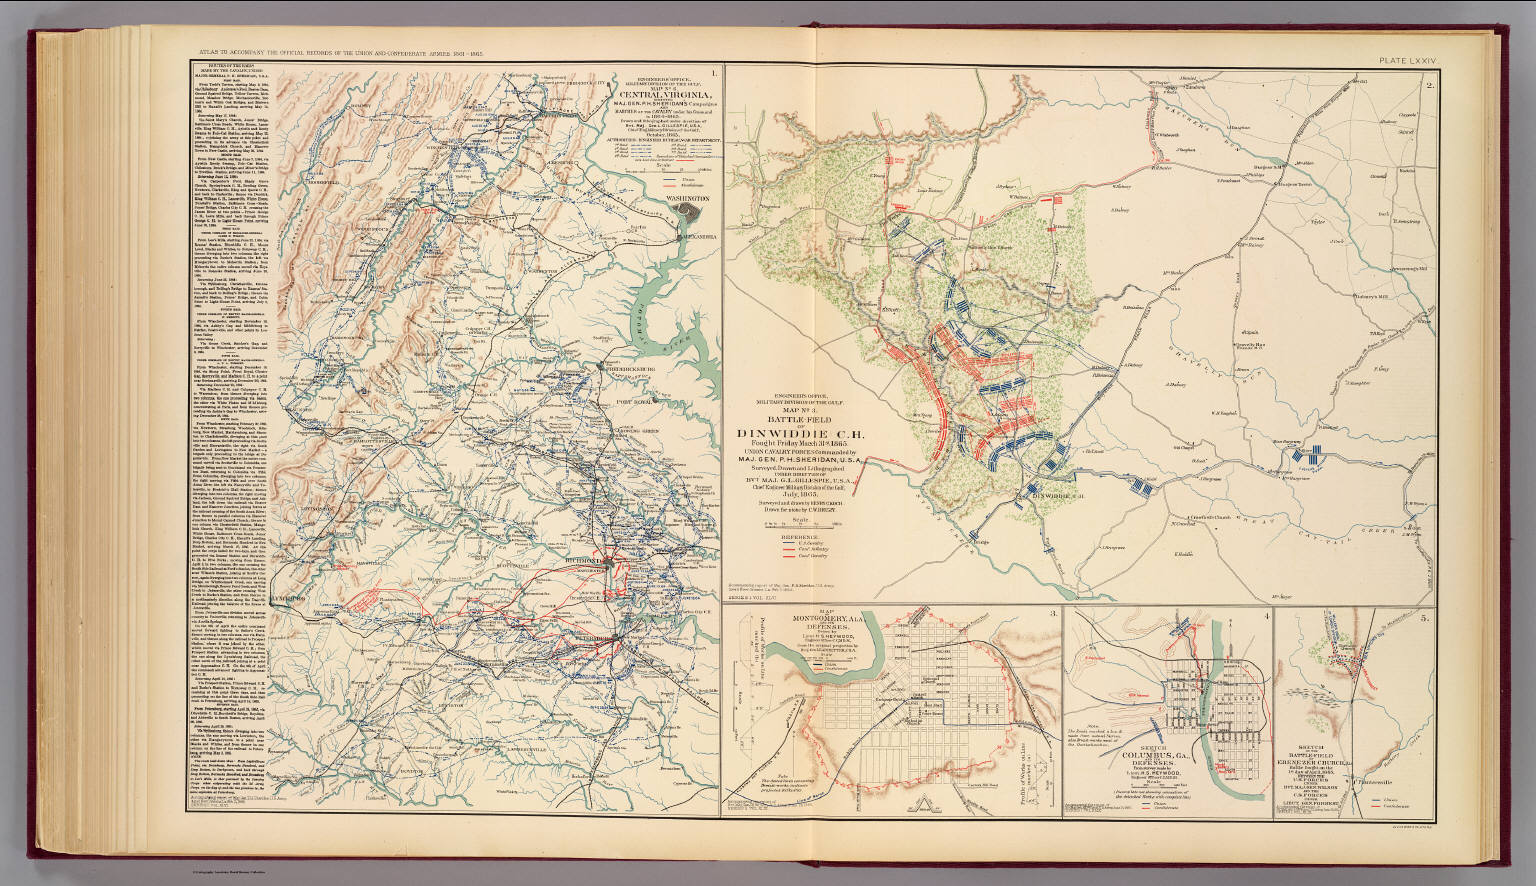 Central Virginia Map.Central Virginia Dinwiddie C H David Rumsey Historical Map